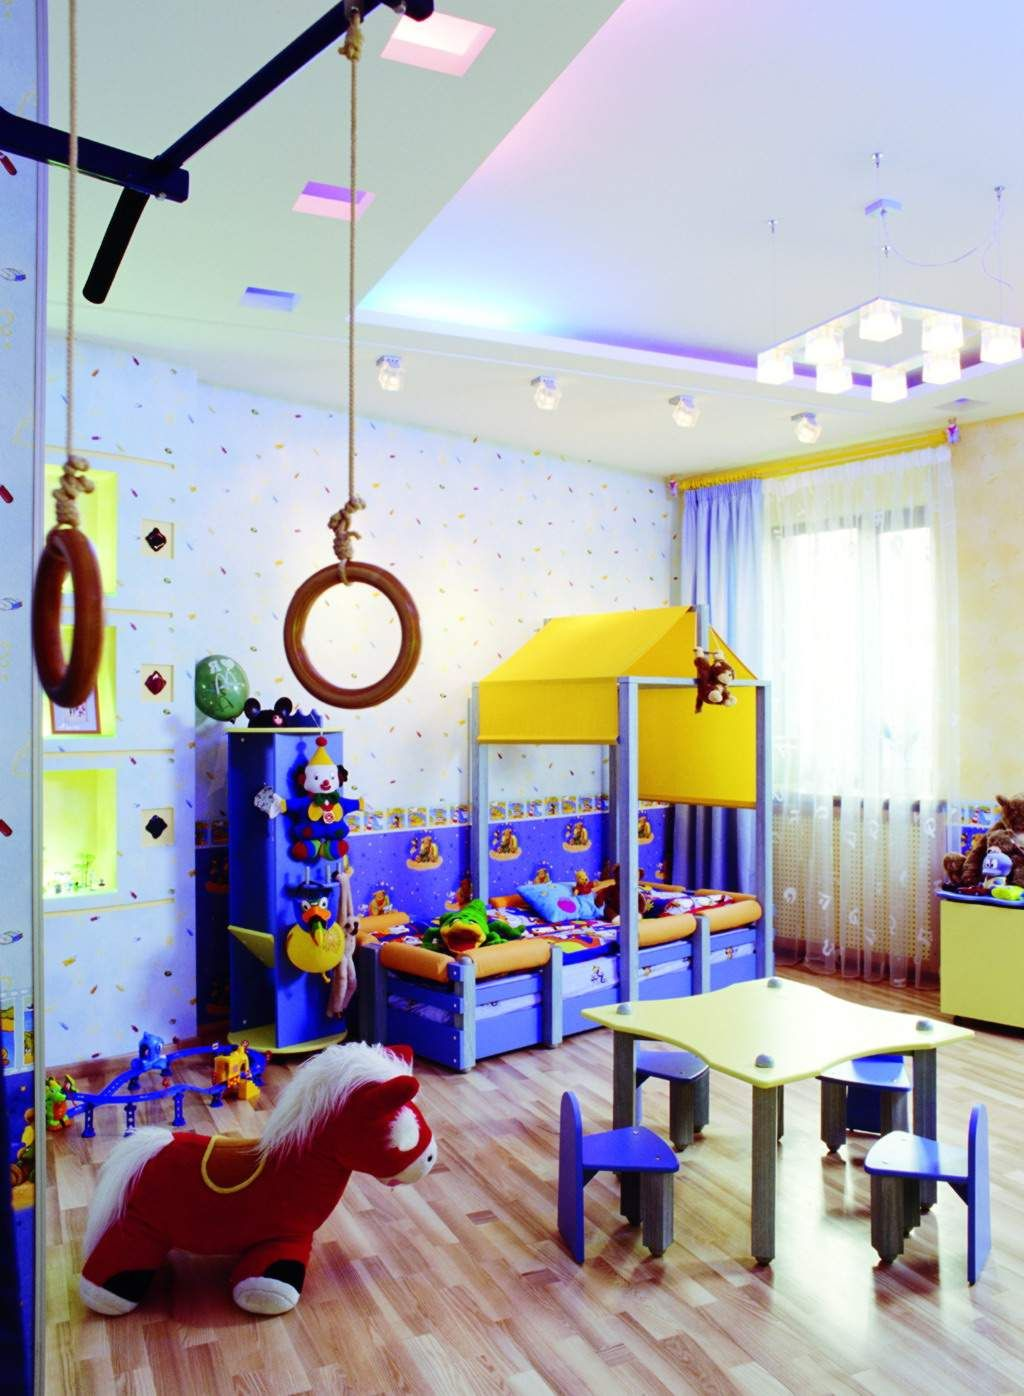 Kids bedroom kids room interior design with play and learn for Interior designers in my area